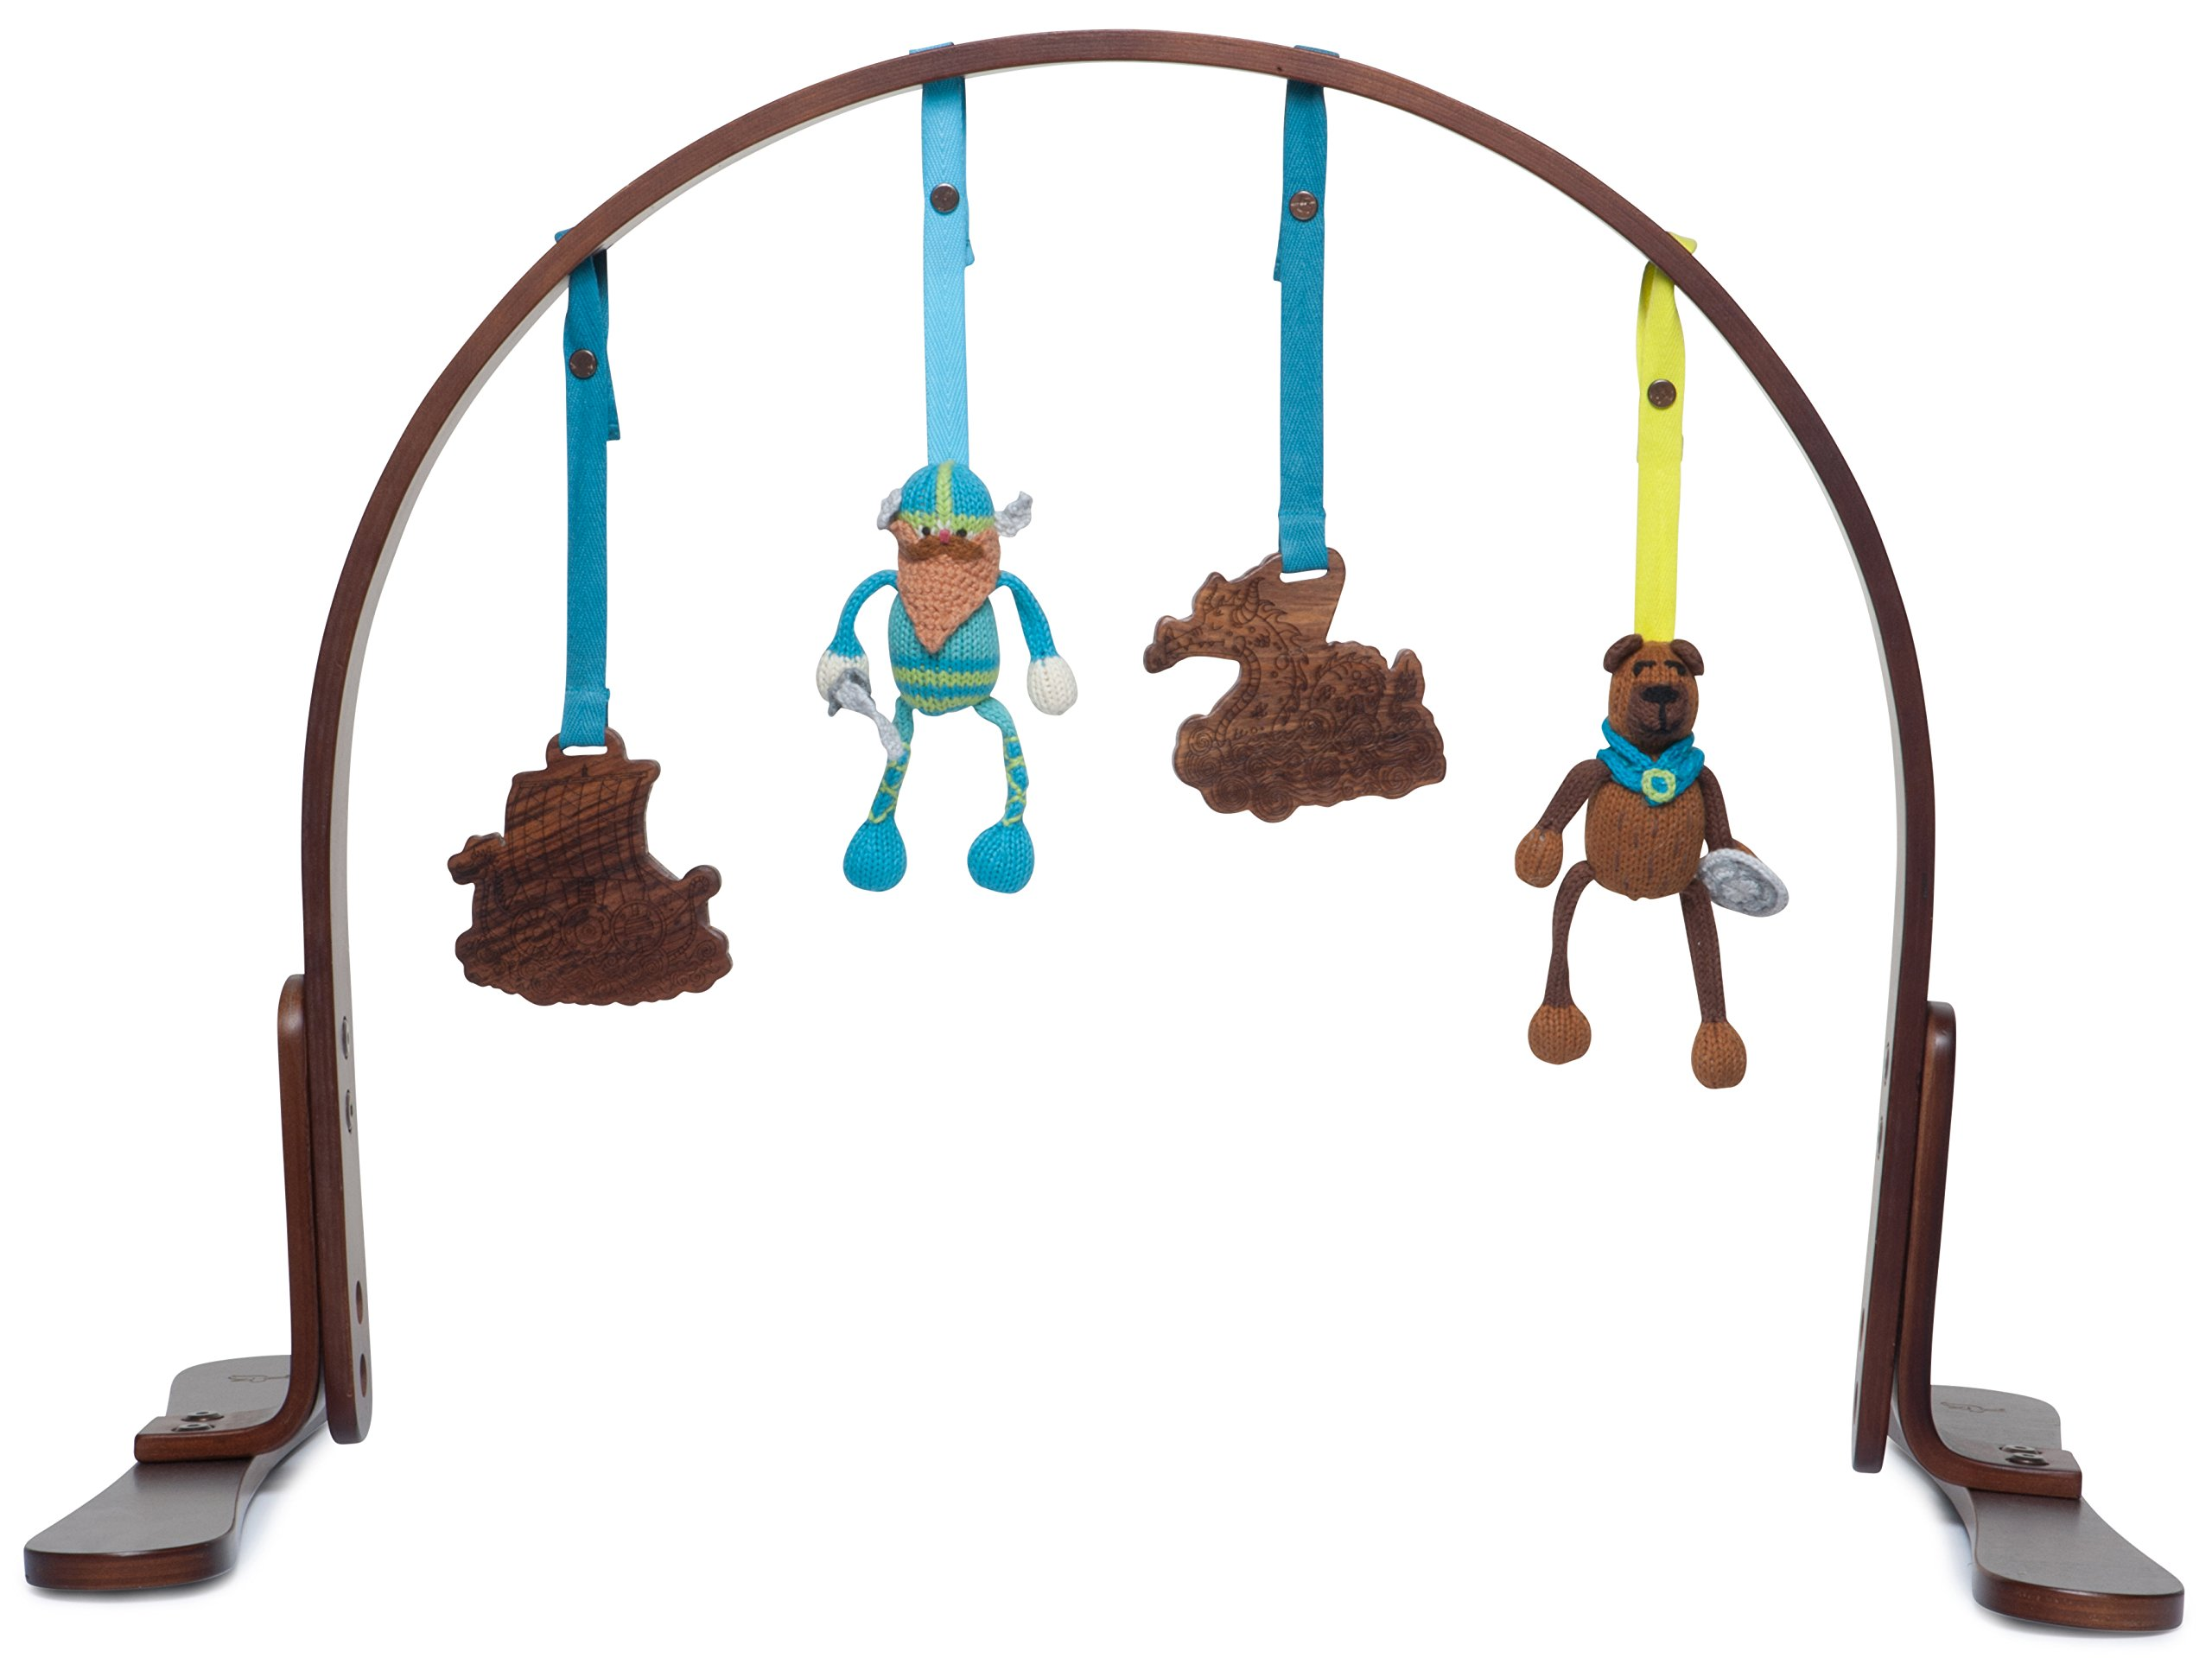 Finn + Emma Play Gym, Organic Cotton and Natural Wood with Hand-Knit Rattle and Teether Stroller Toys for Baby Boy or Girl – Vikings - Dark